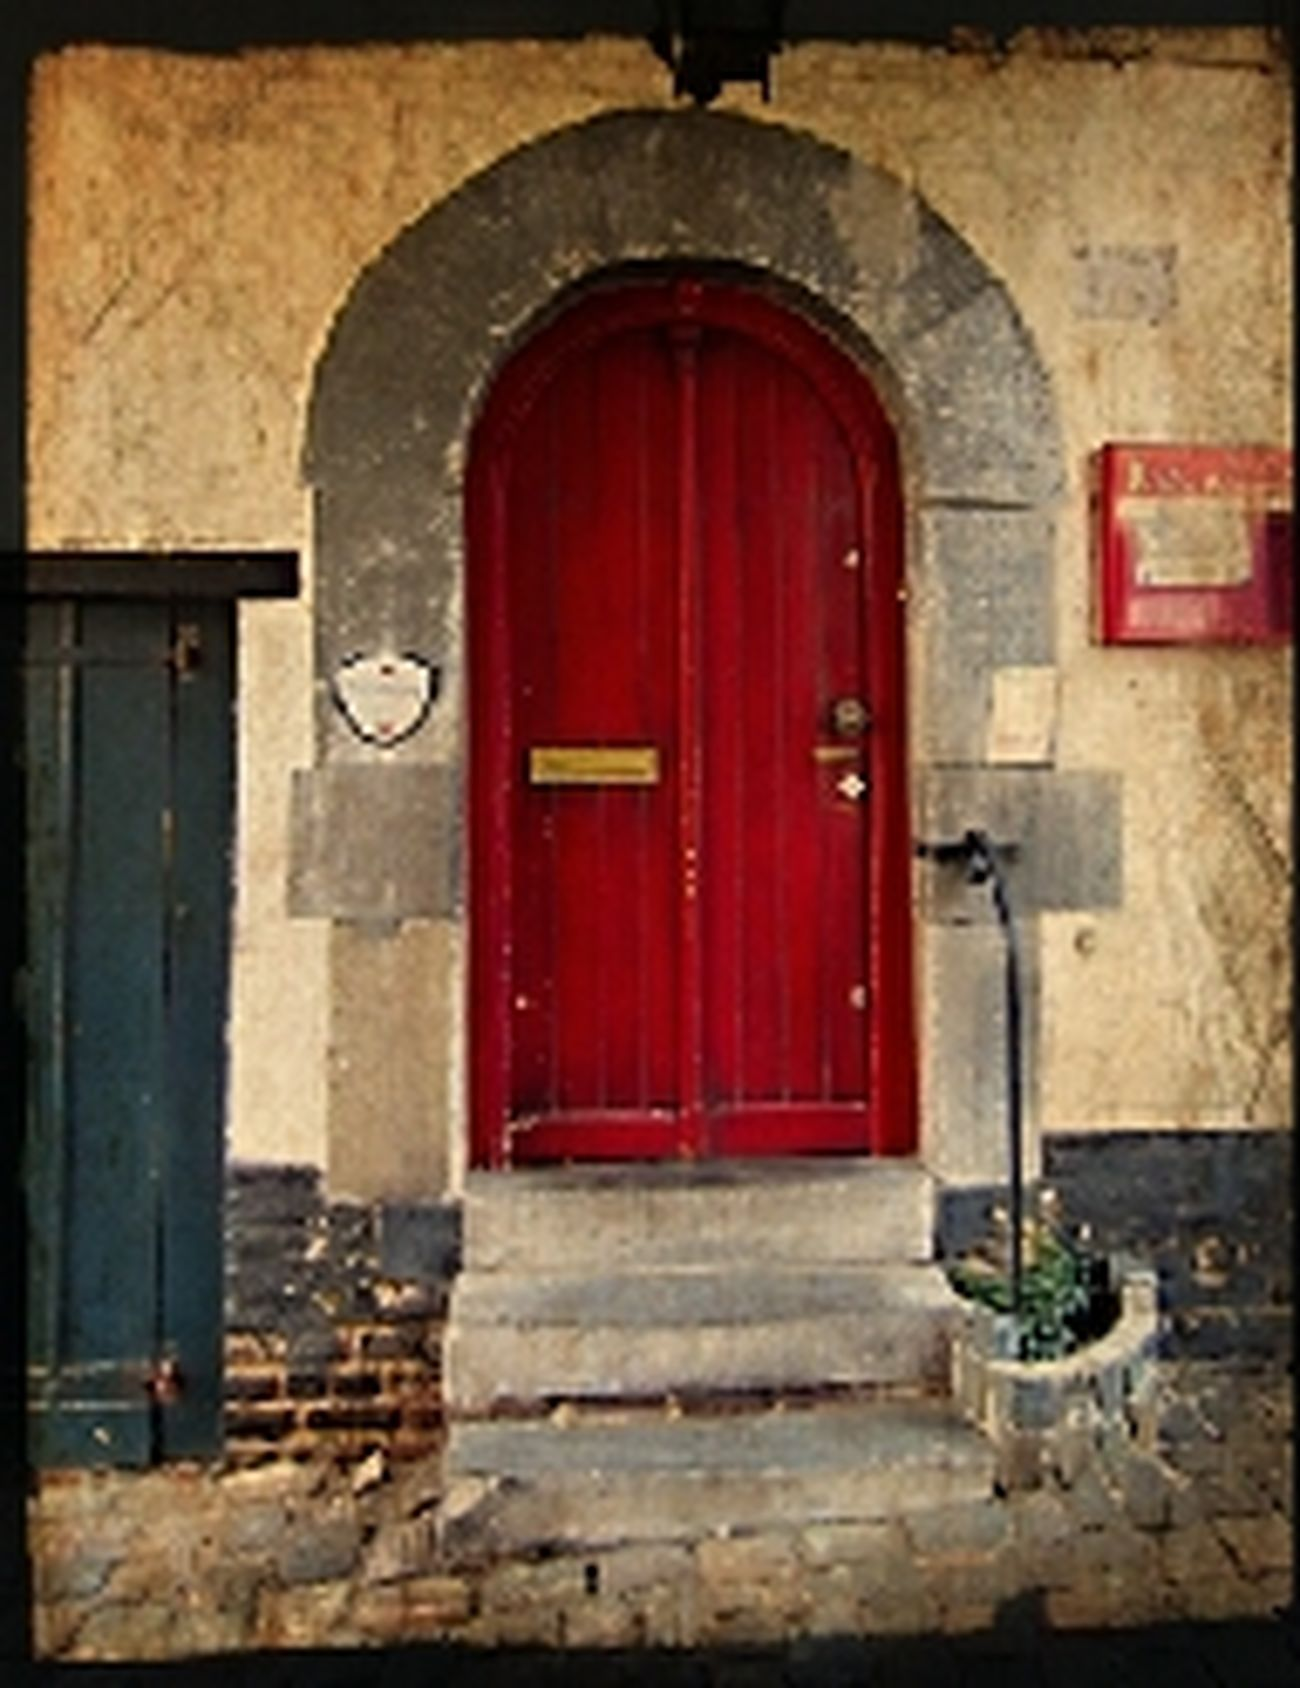 Streamzoofamily Most Stunning Shot EyeEm Best Shots - Architecture Old_door